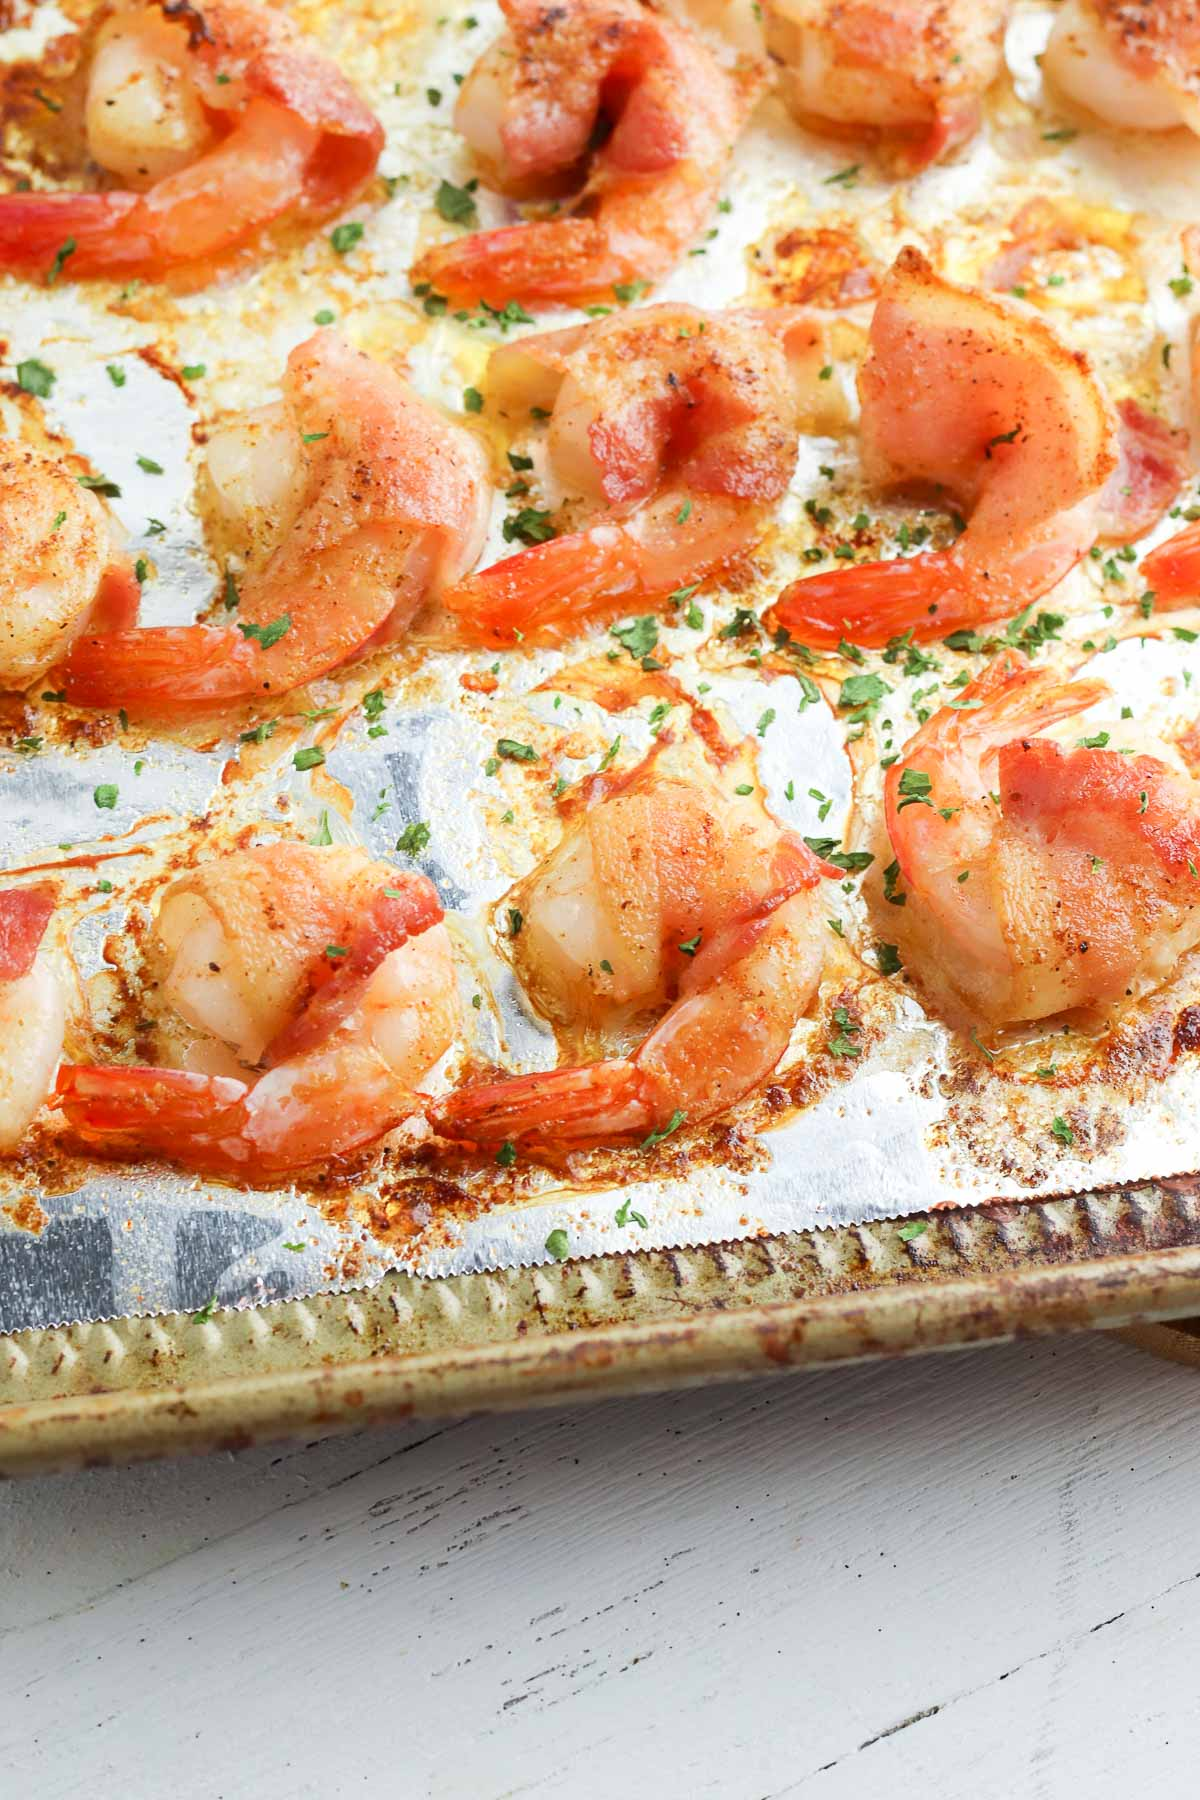 bacon wrapped shrimp on pan